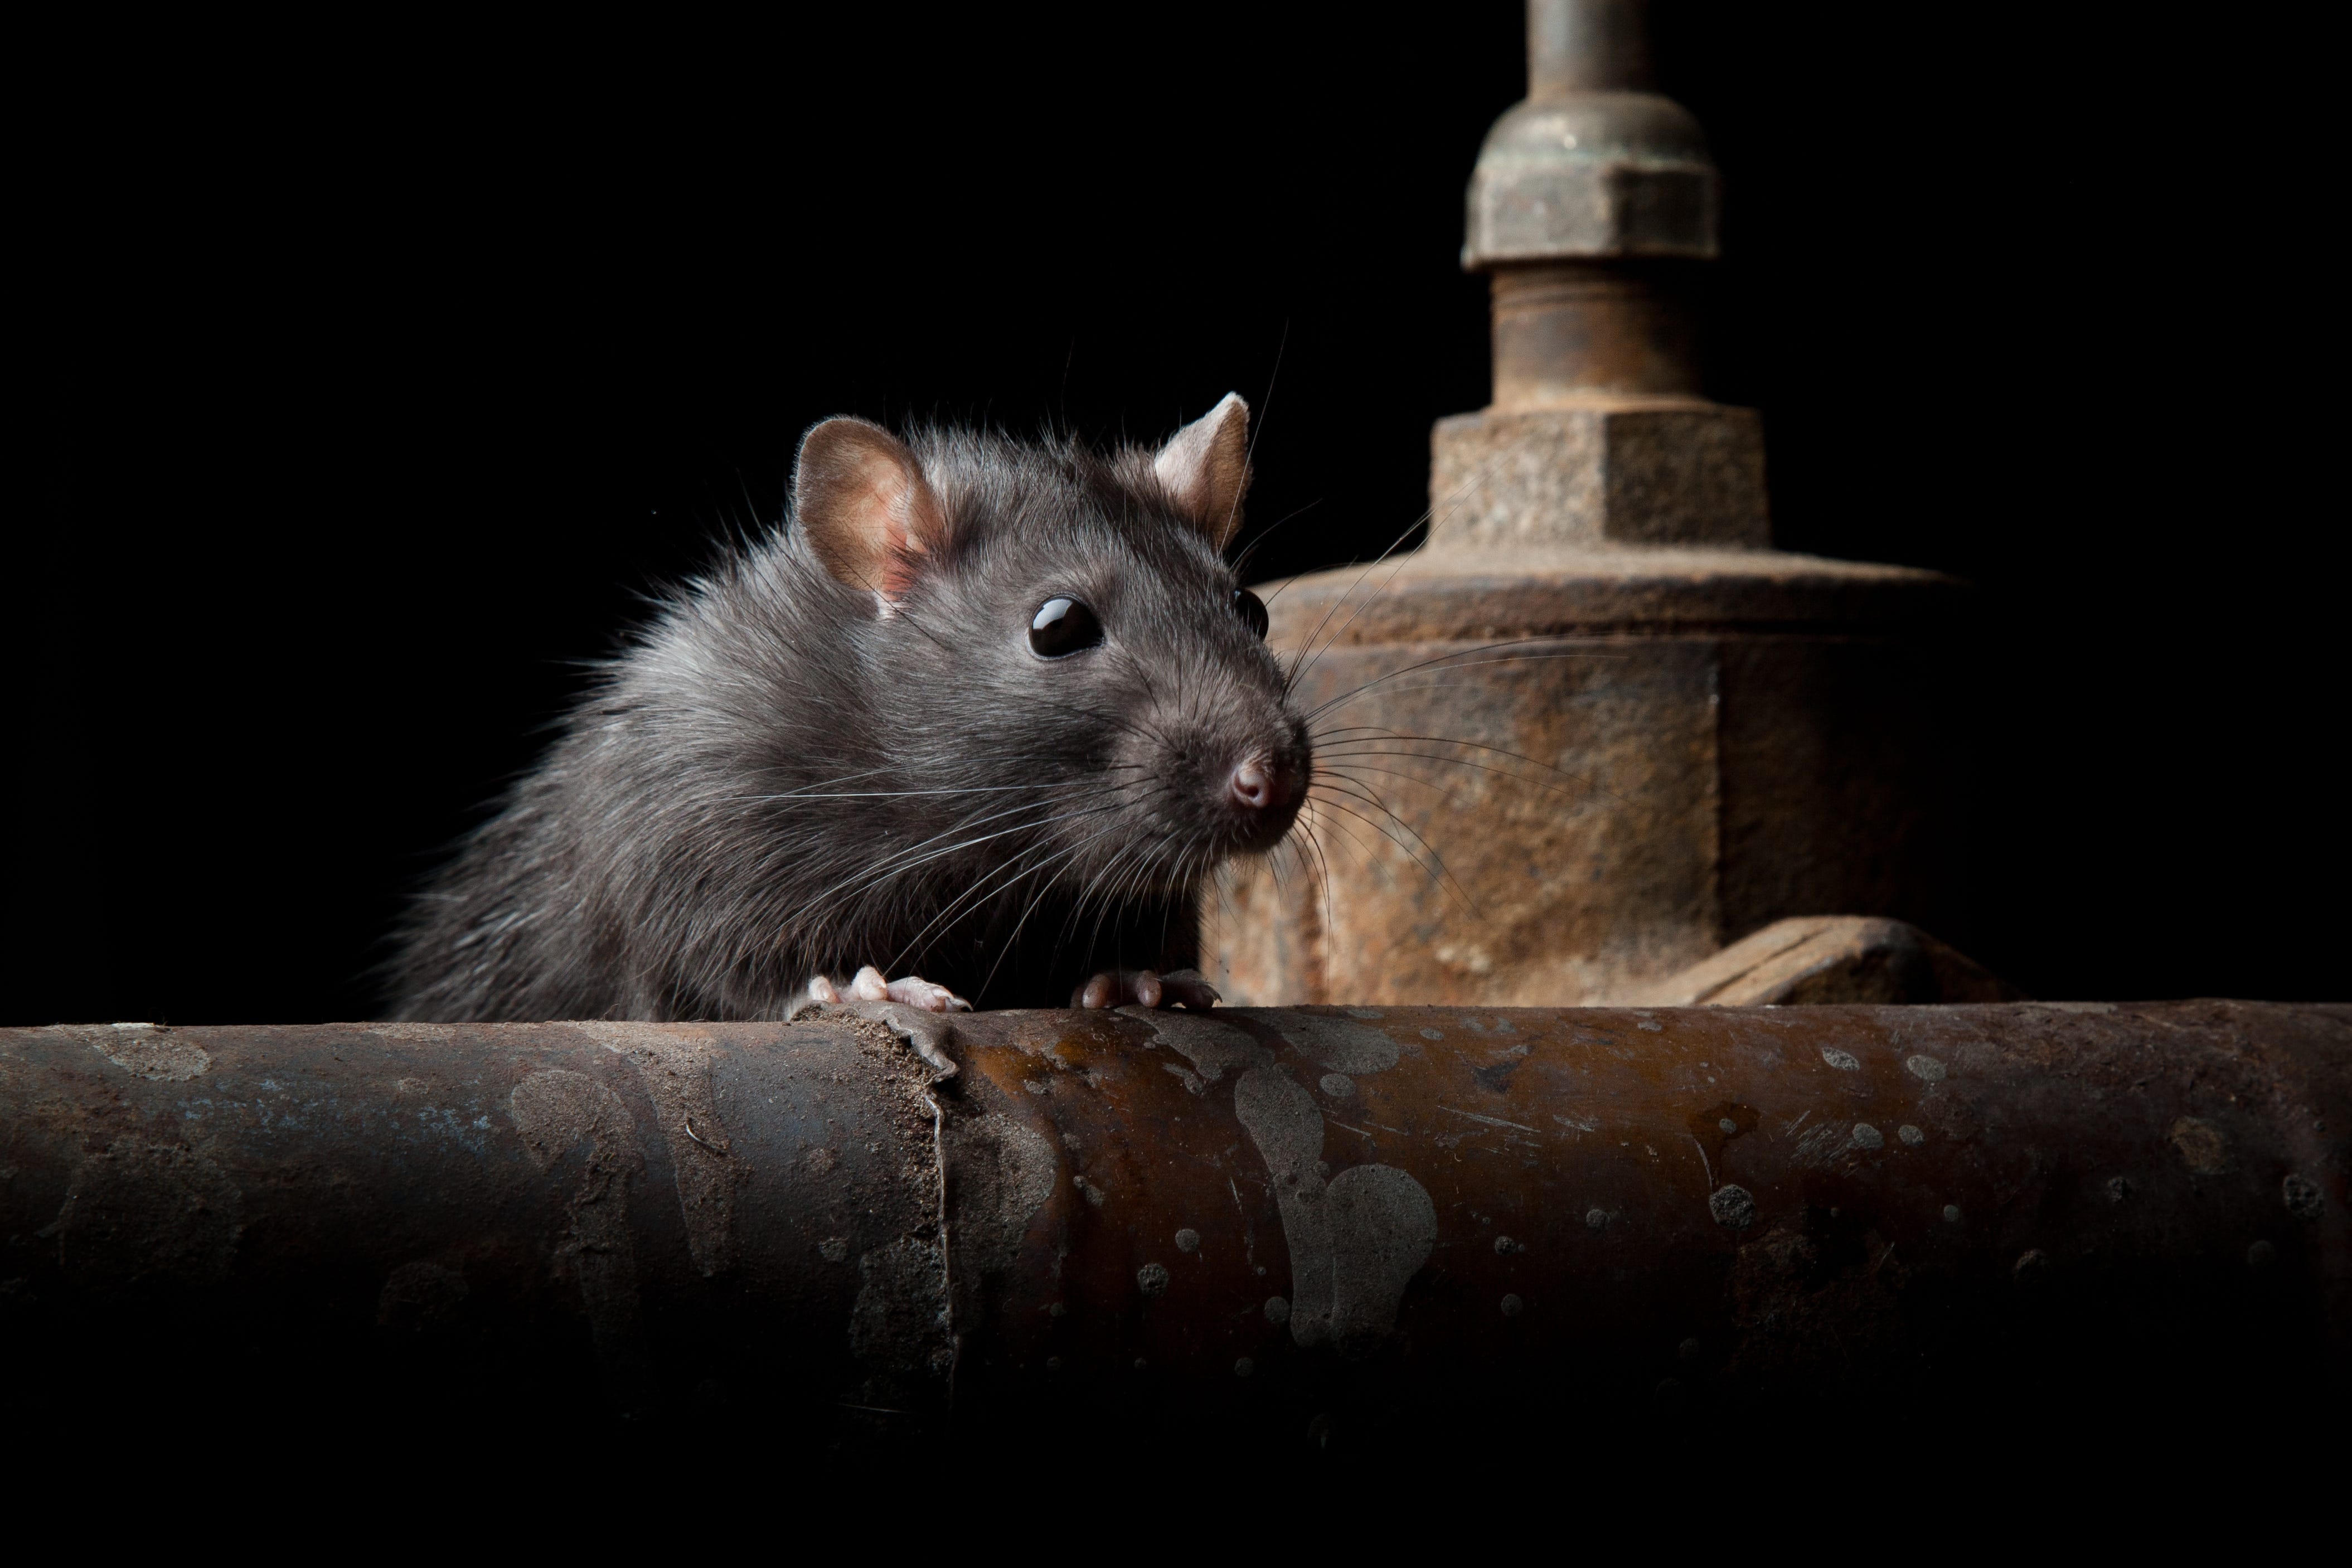 636612917378509609 GettyImages 628418392?width=3200&height=1680&fit=crop rats eat through your car wiring? here's why it's happening